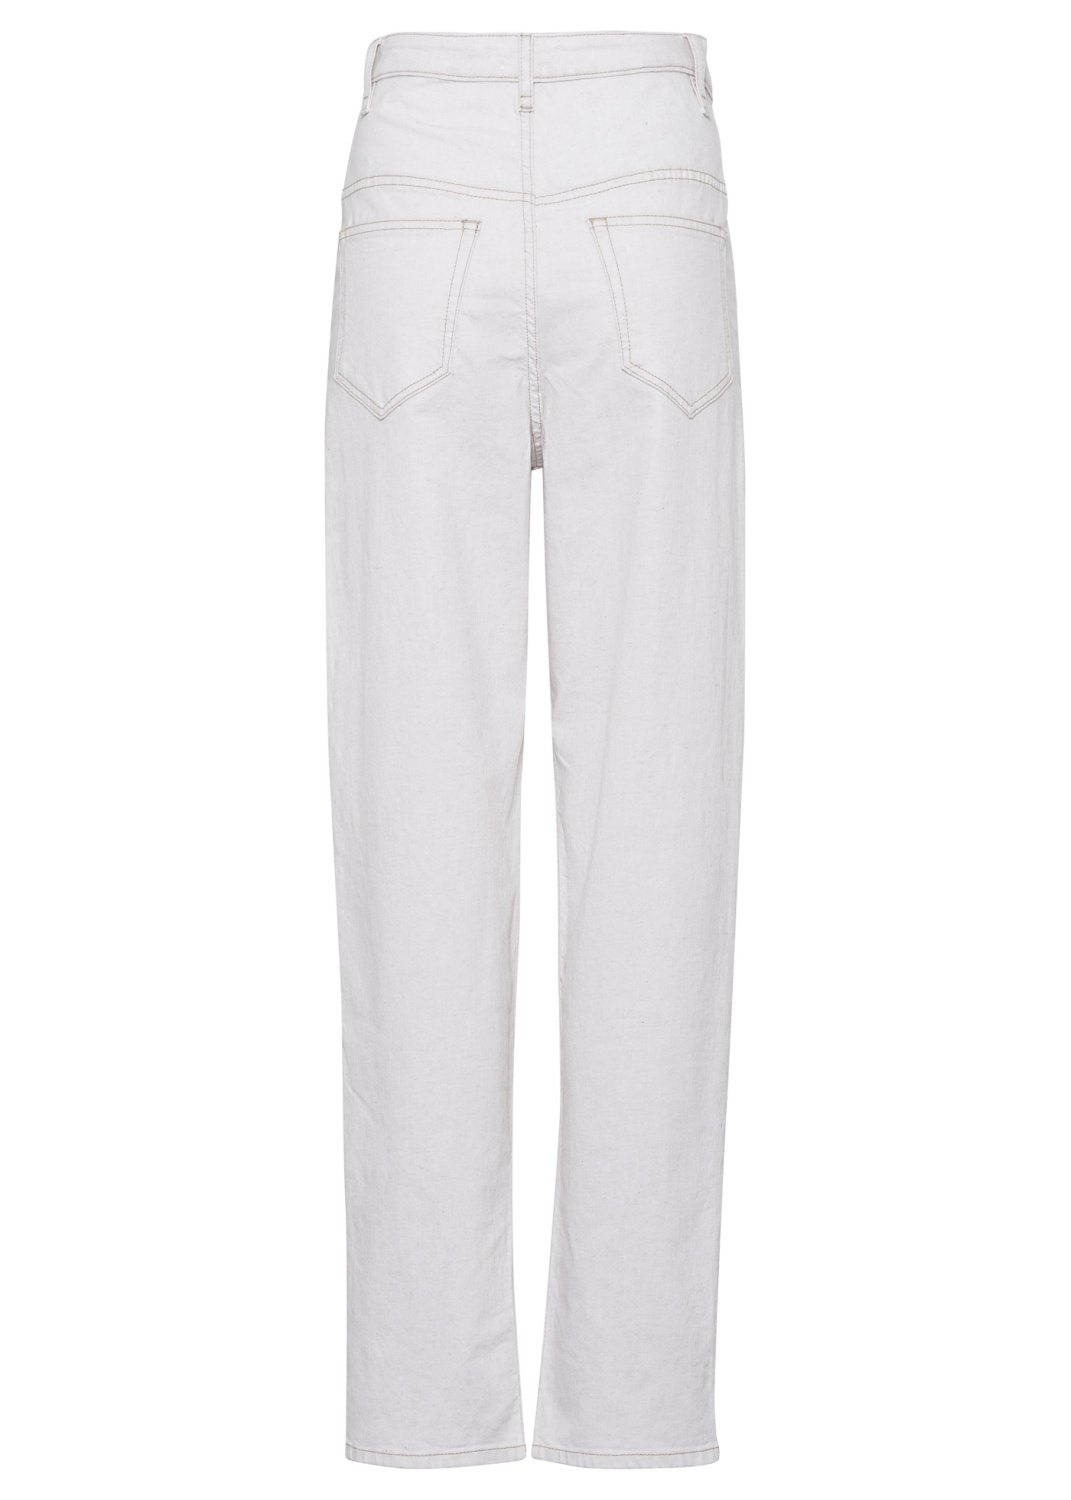 CORFY Trouser image number 1